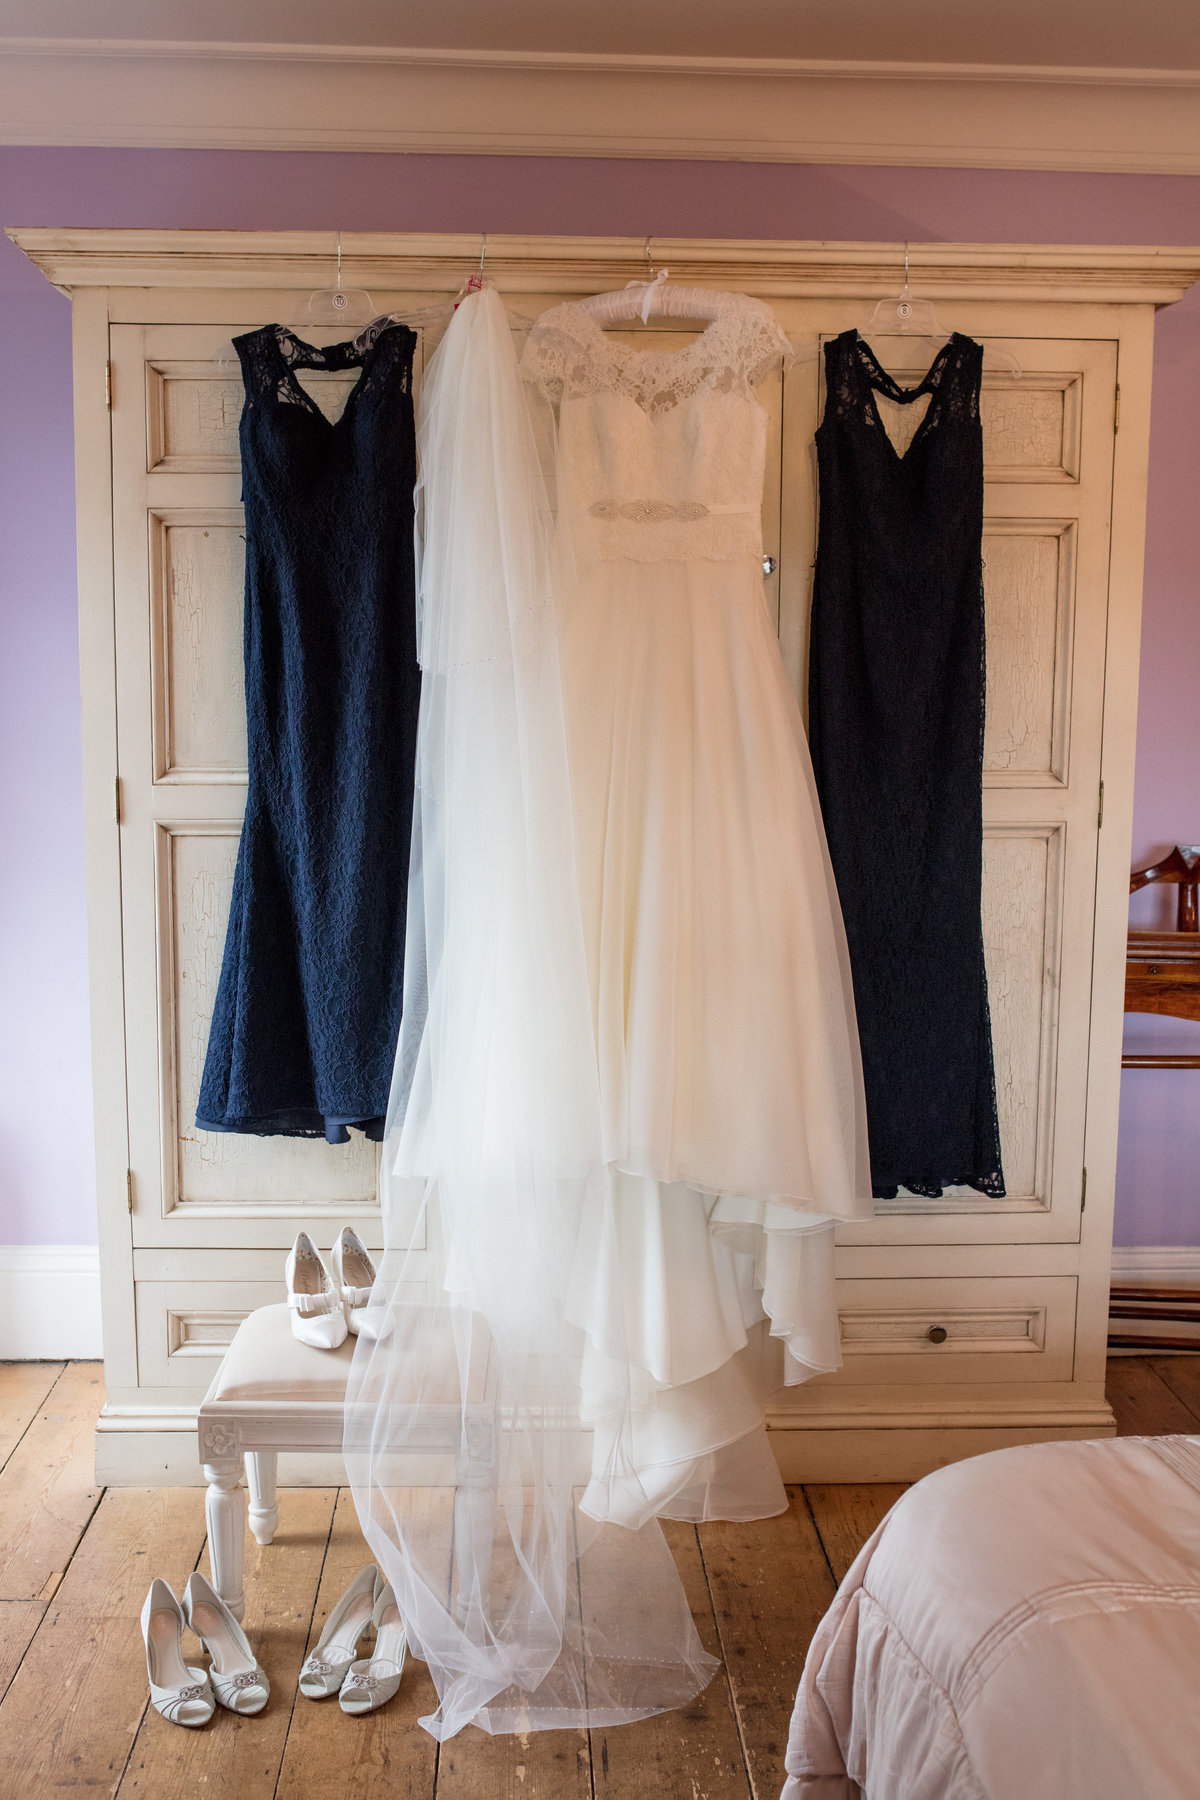 bridal dresses hanging up